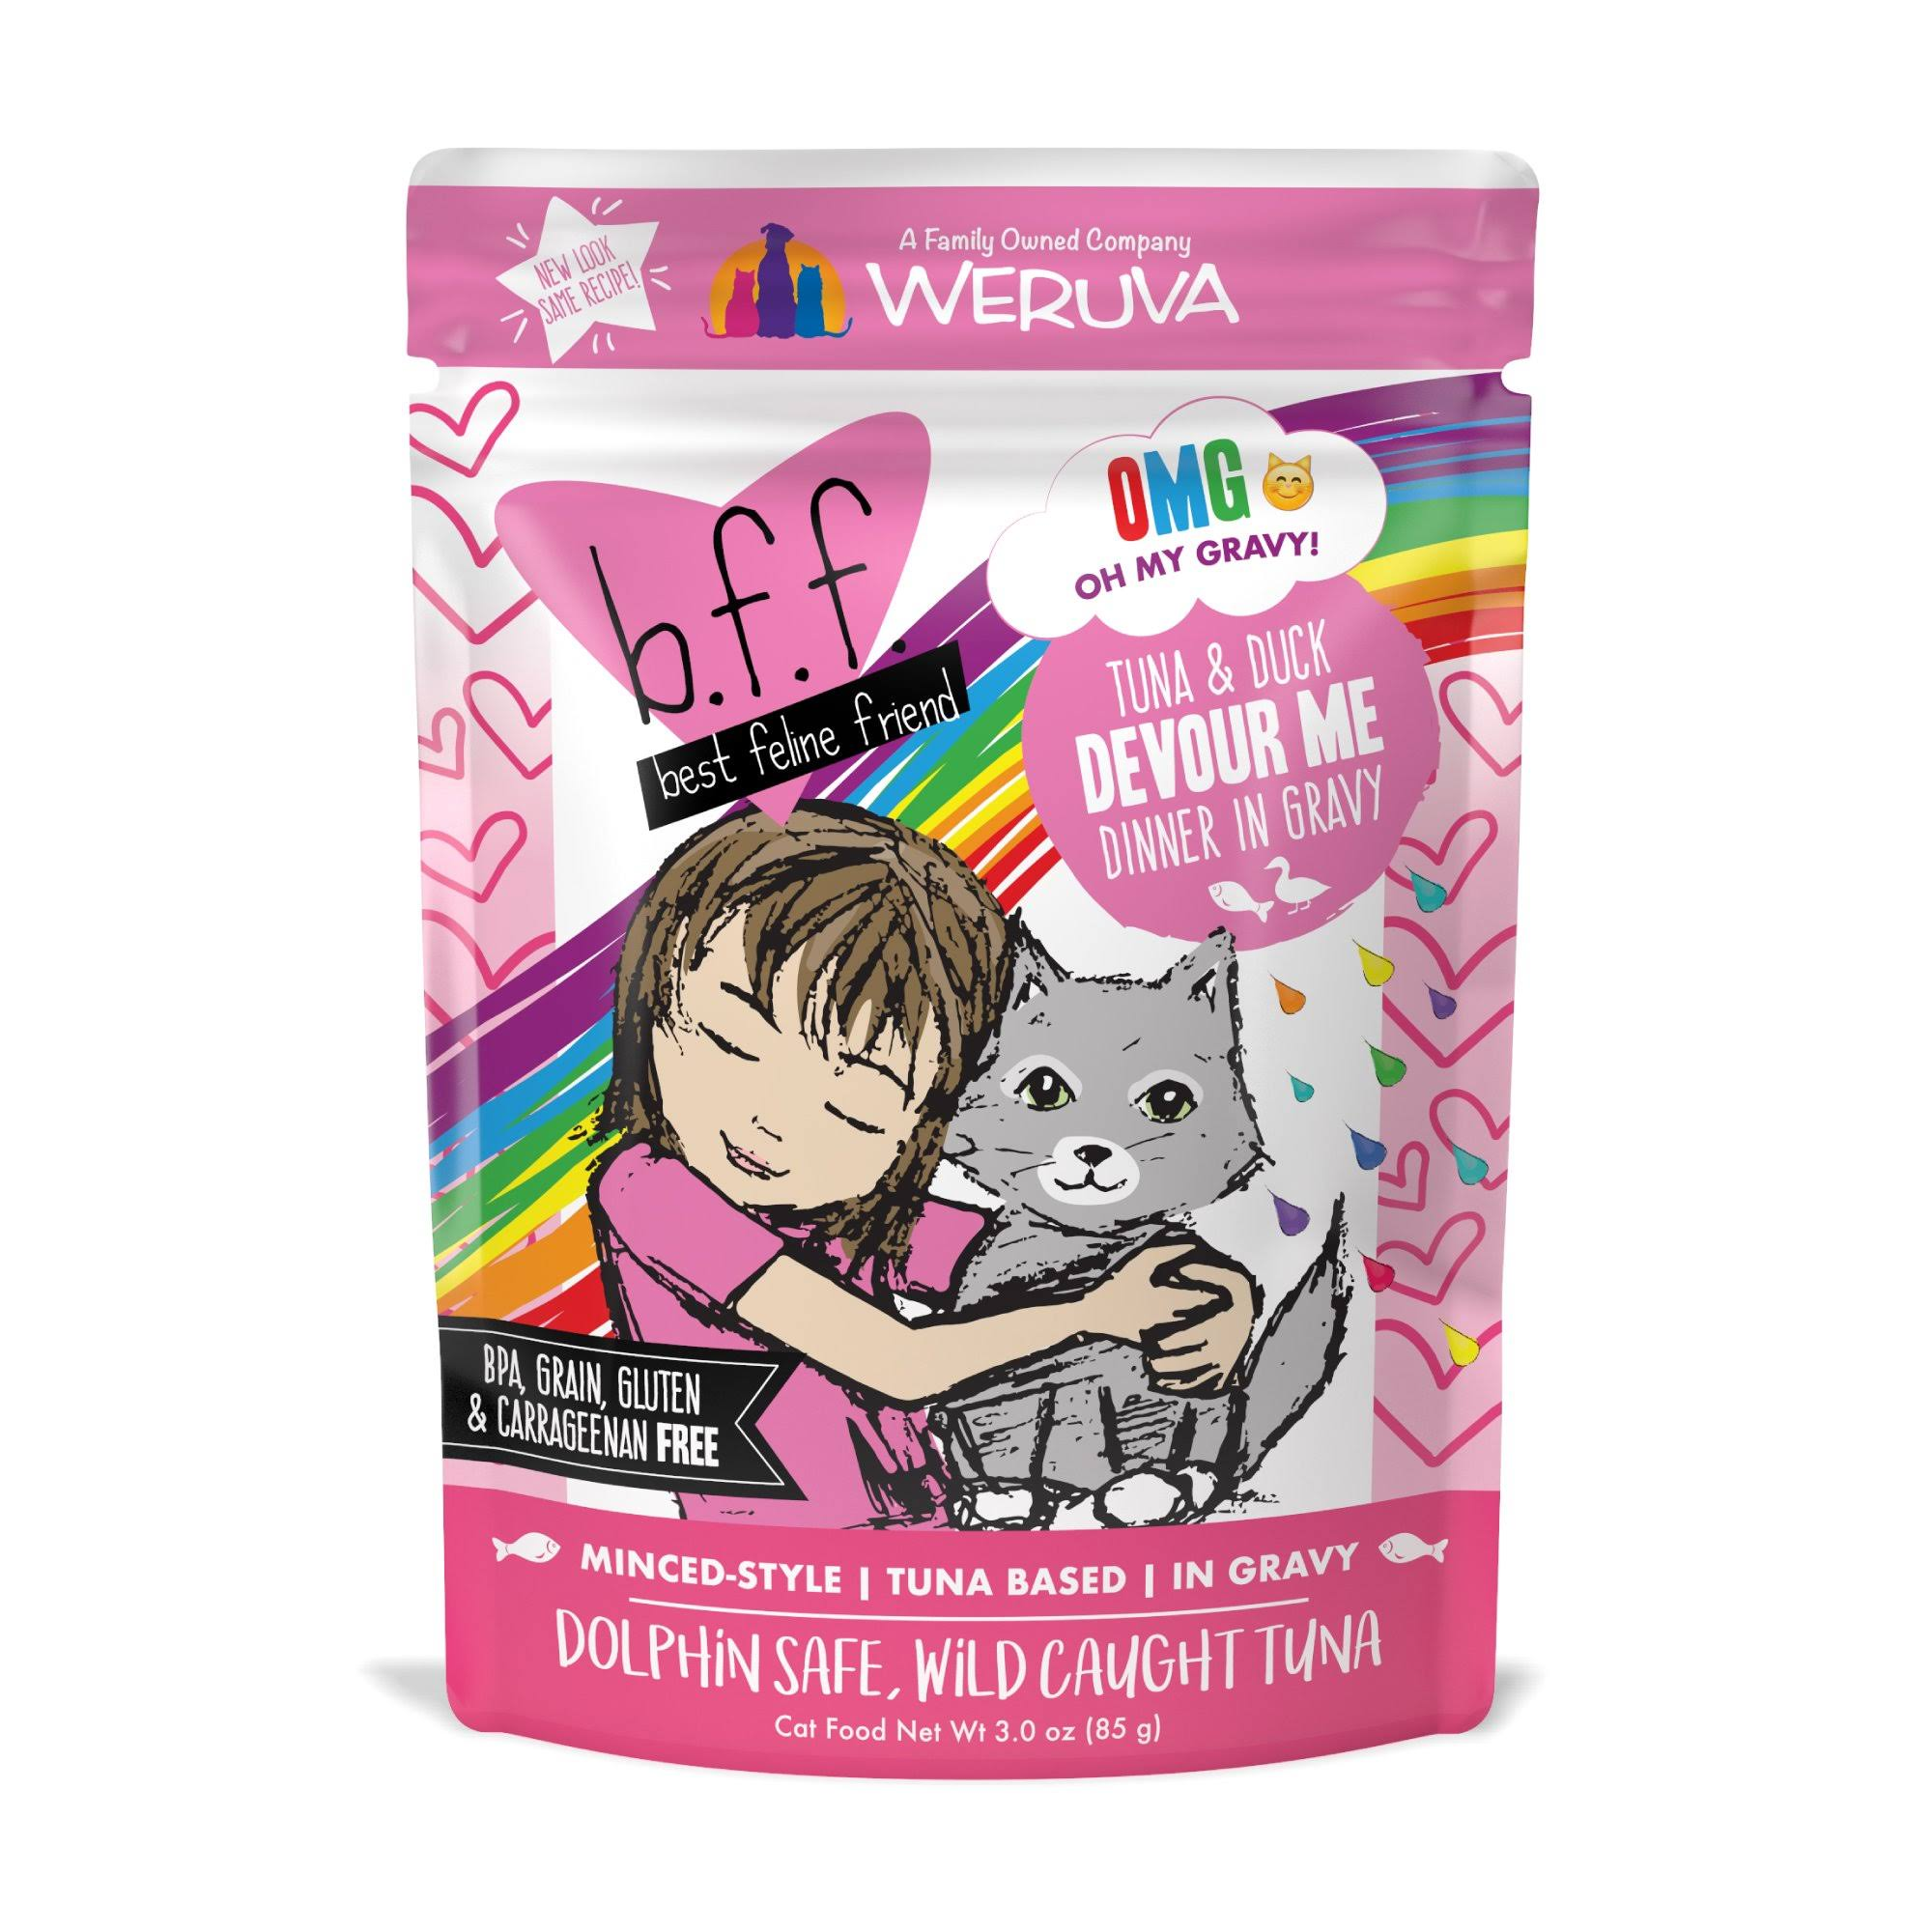 Best Feline Friend Grain Free Cat Food - Tuna and Duck Devour Me